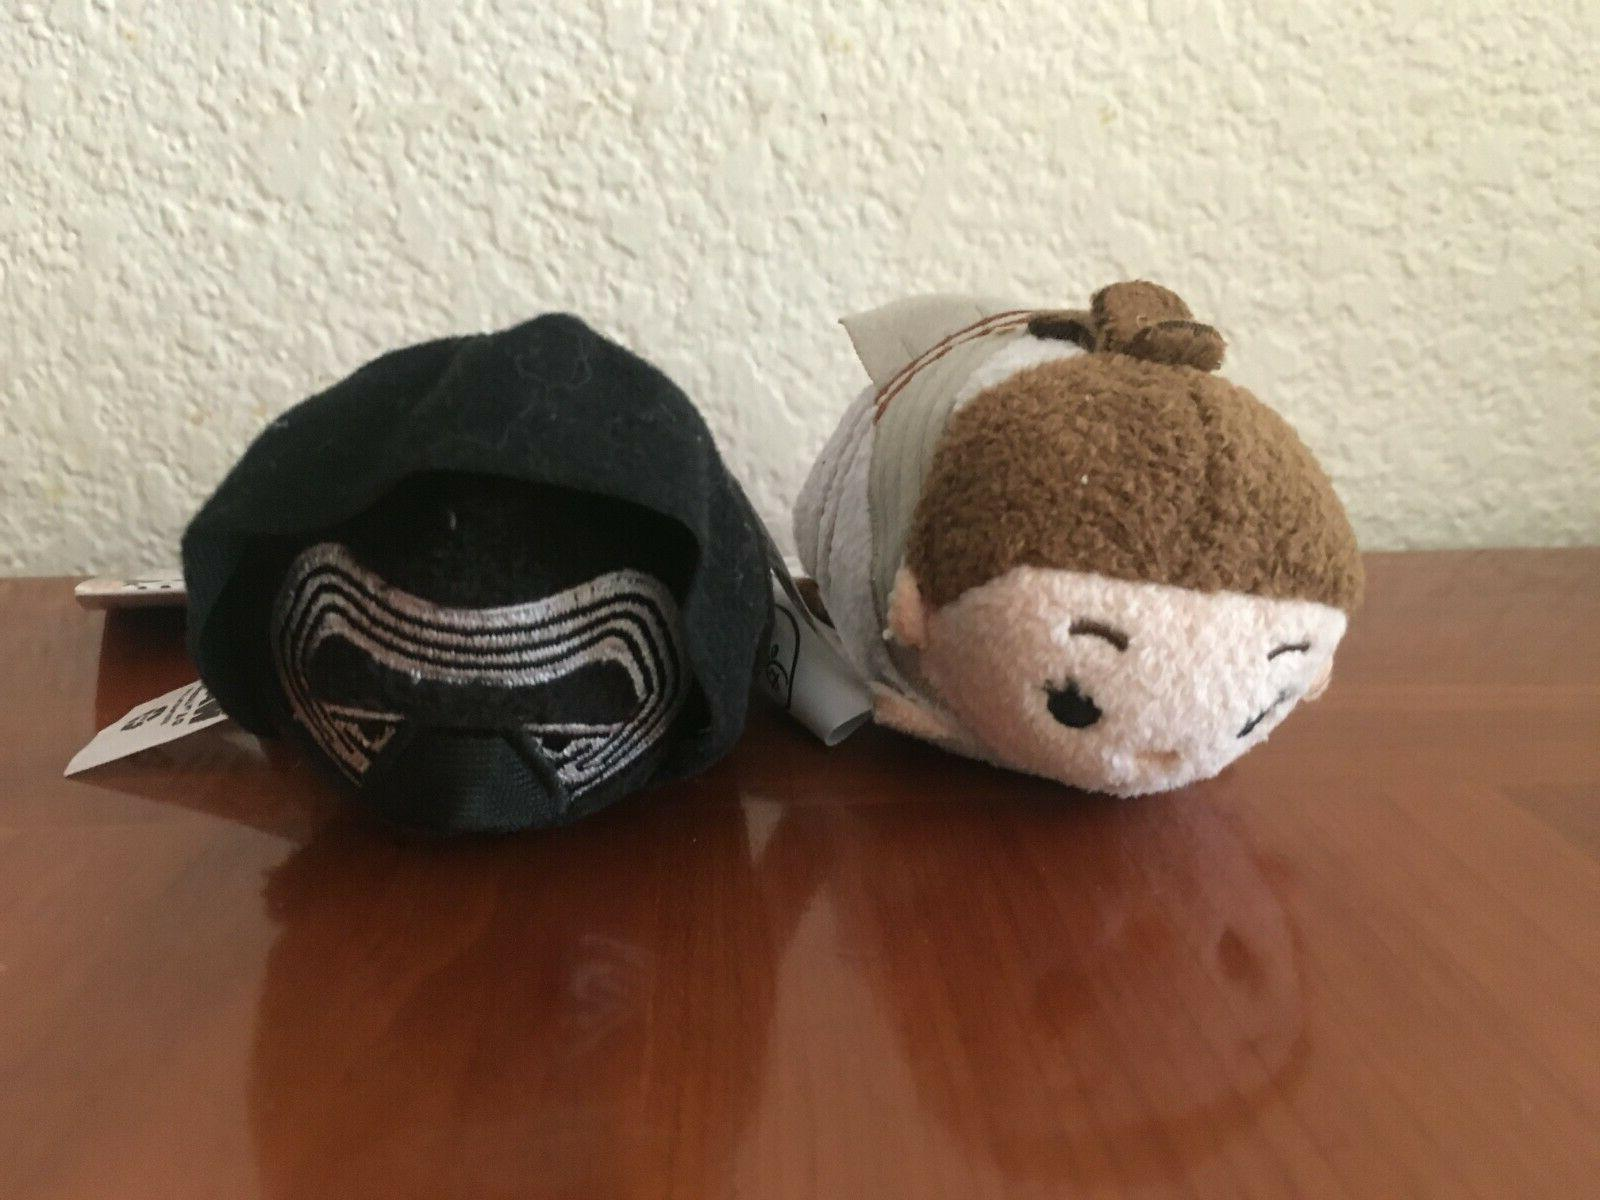 star wars tsum tsum plush toy small